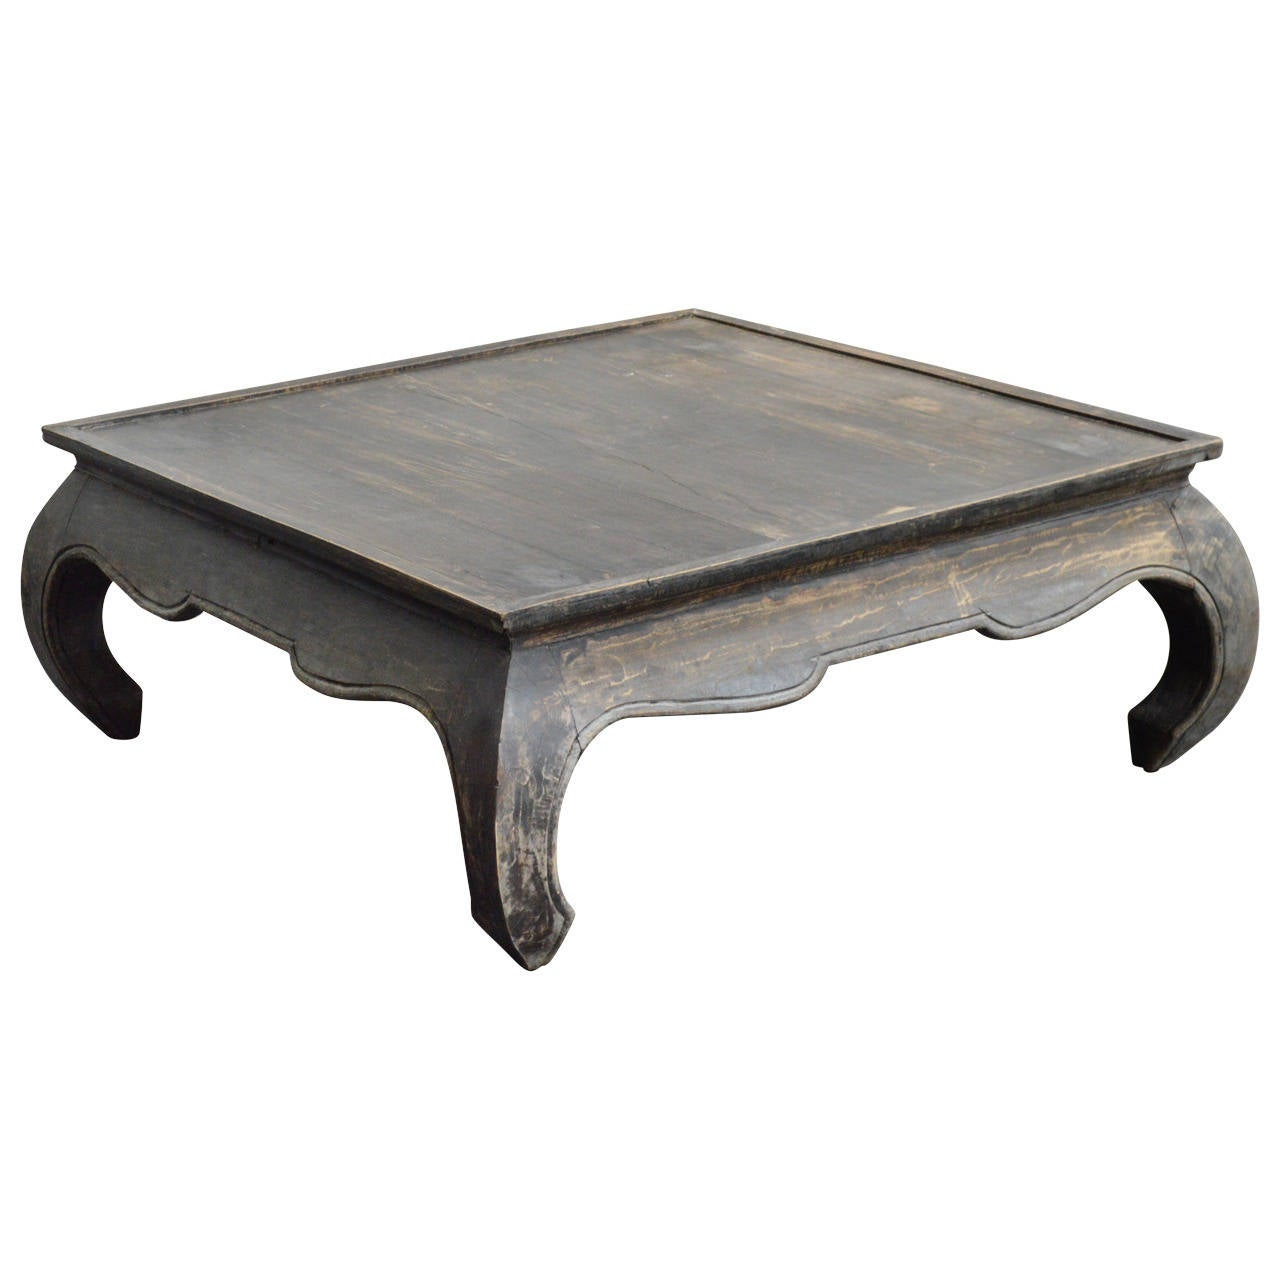 Vintage Square Opium Leg Coffee Table At 1stdibs